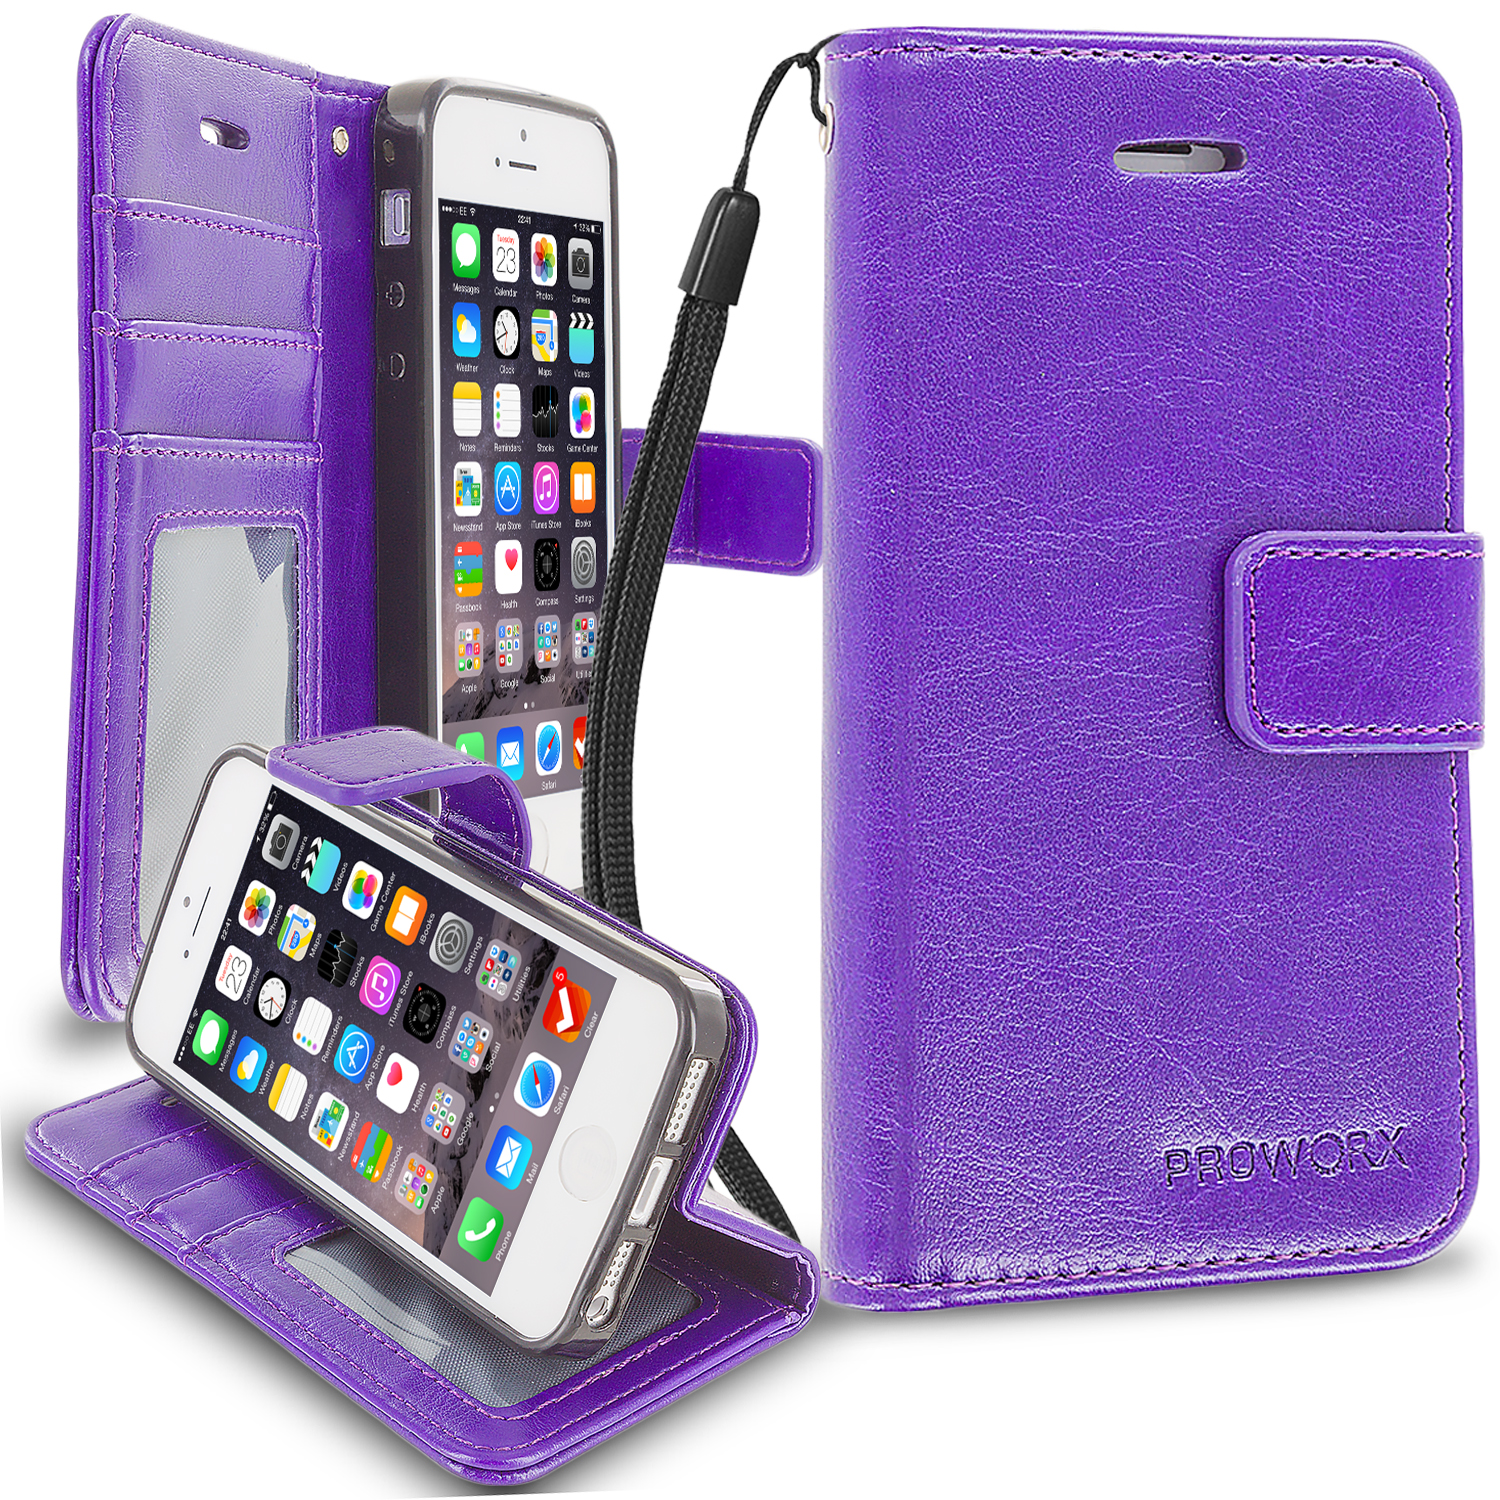 Apple iPhone 5/5S/SE Purple ProWorx Wallet Case Luxury PU Leather Case Cover With Card Slots & Stand